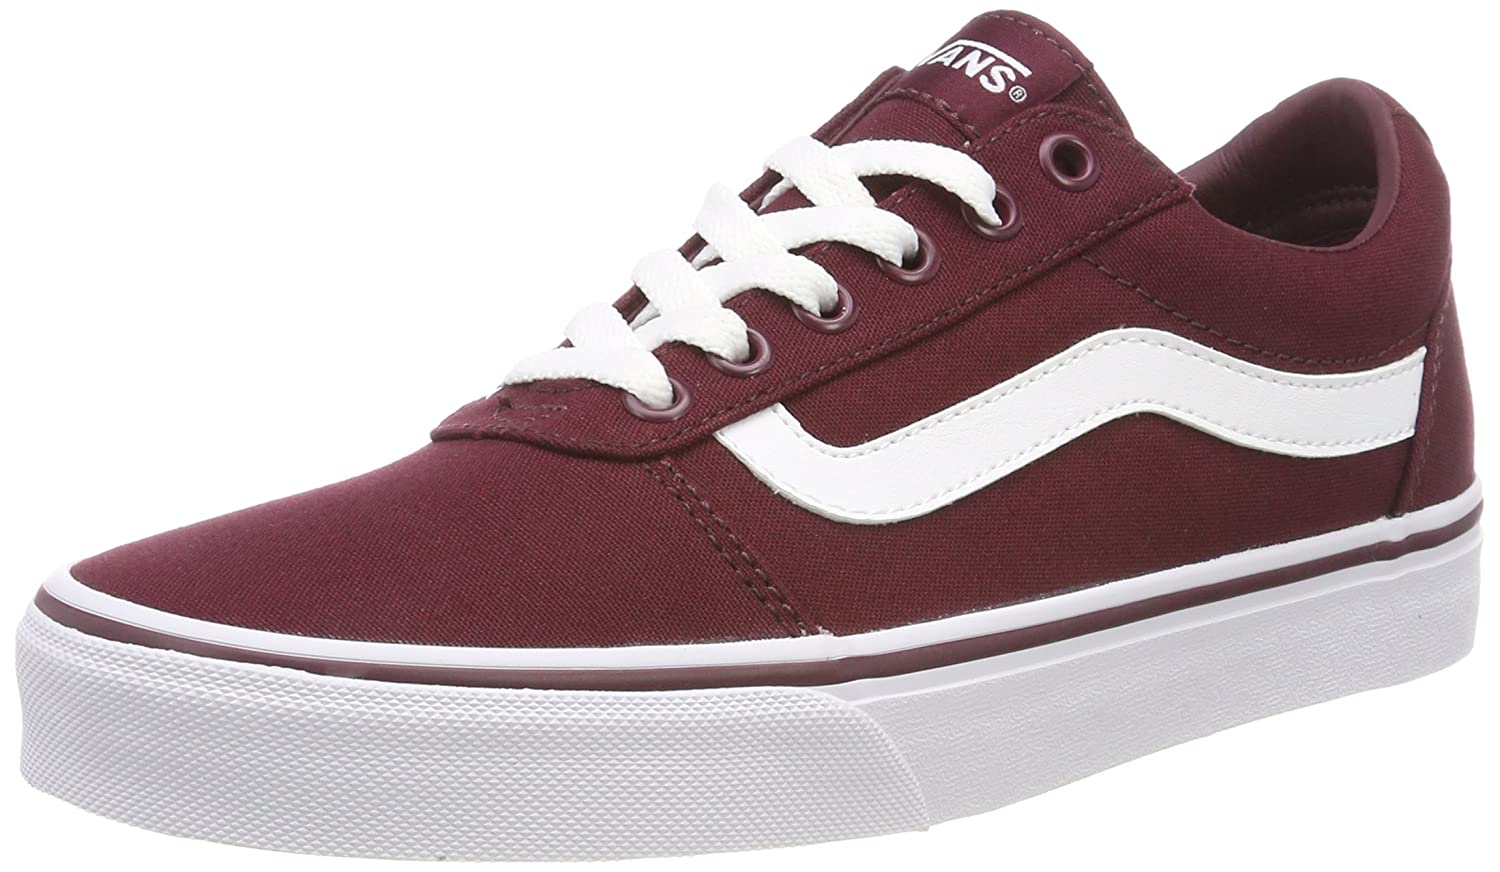 Red ((Canvas) Burgundy Olq) Vans Womens Ward Suede Low Top Lace up Fashion Sneakers